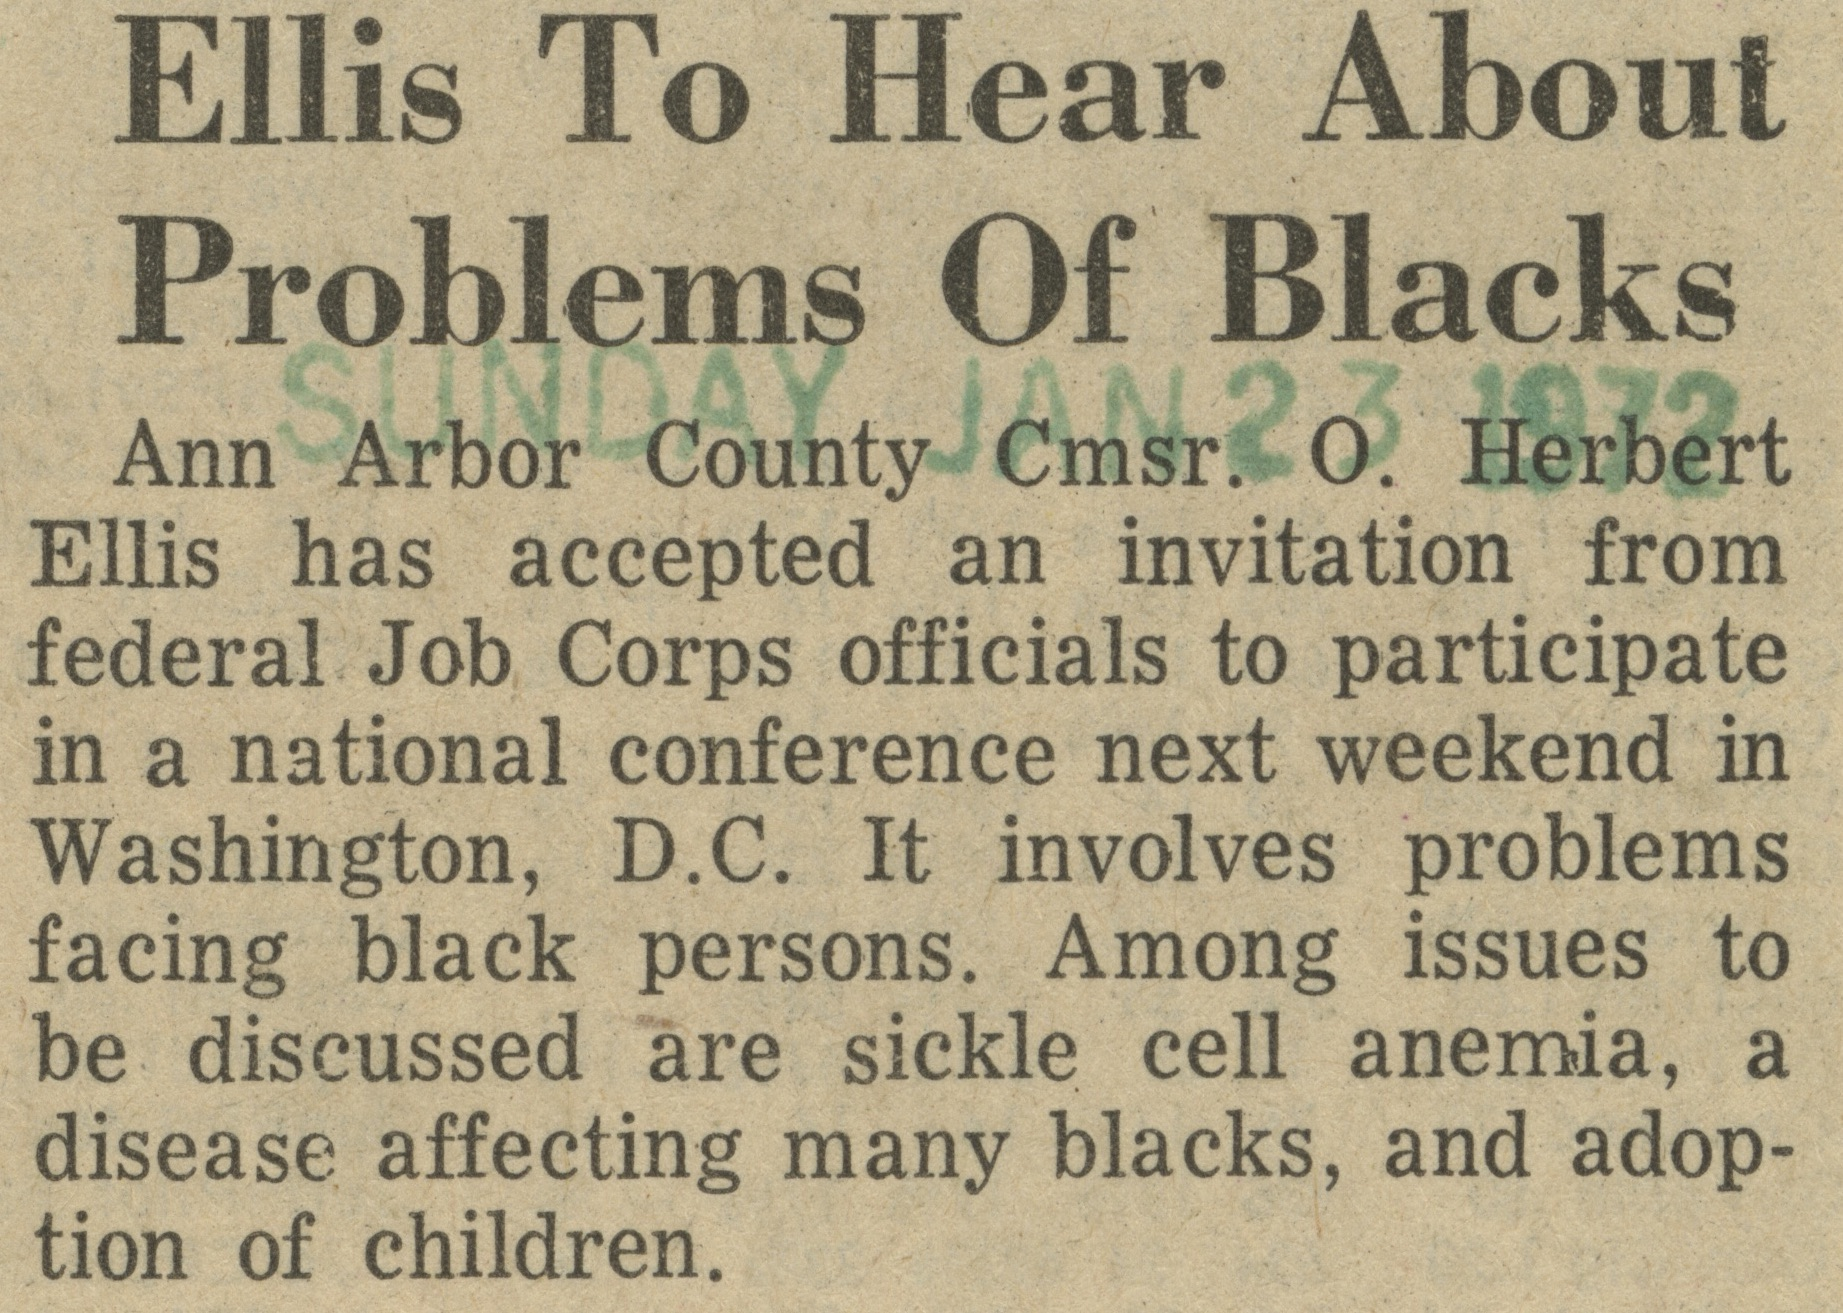 Ellis To Hear About Problems Of Blacks image